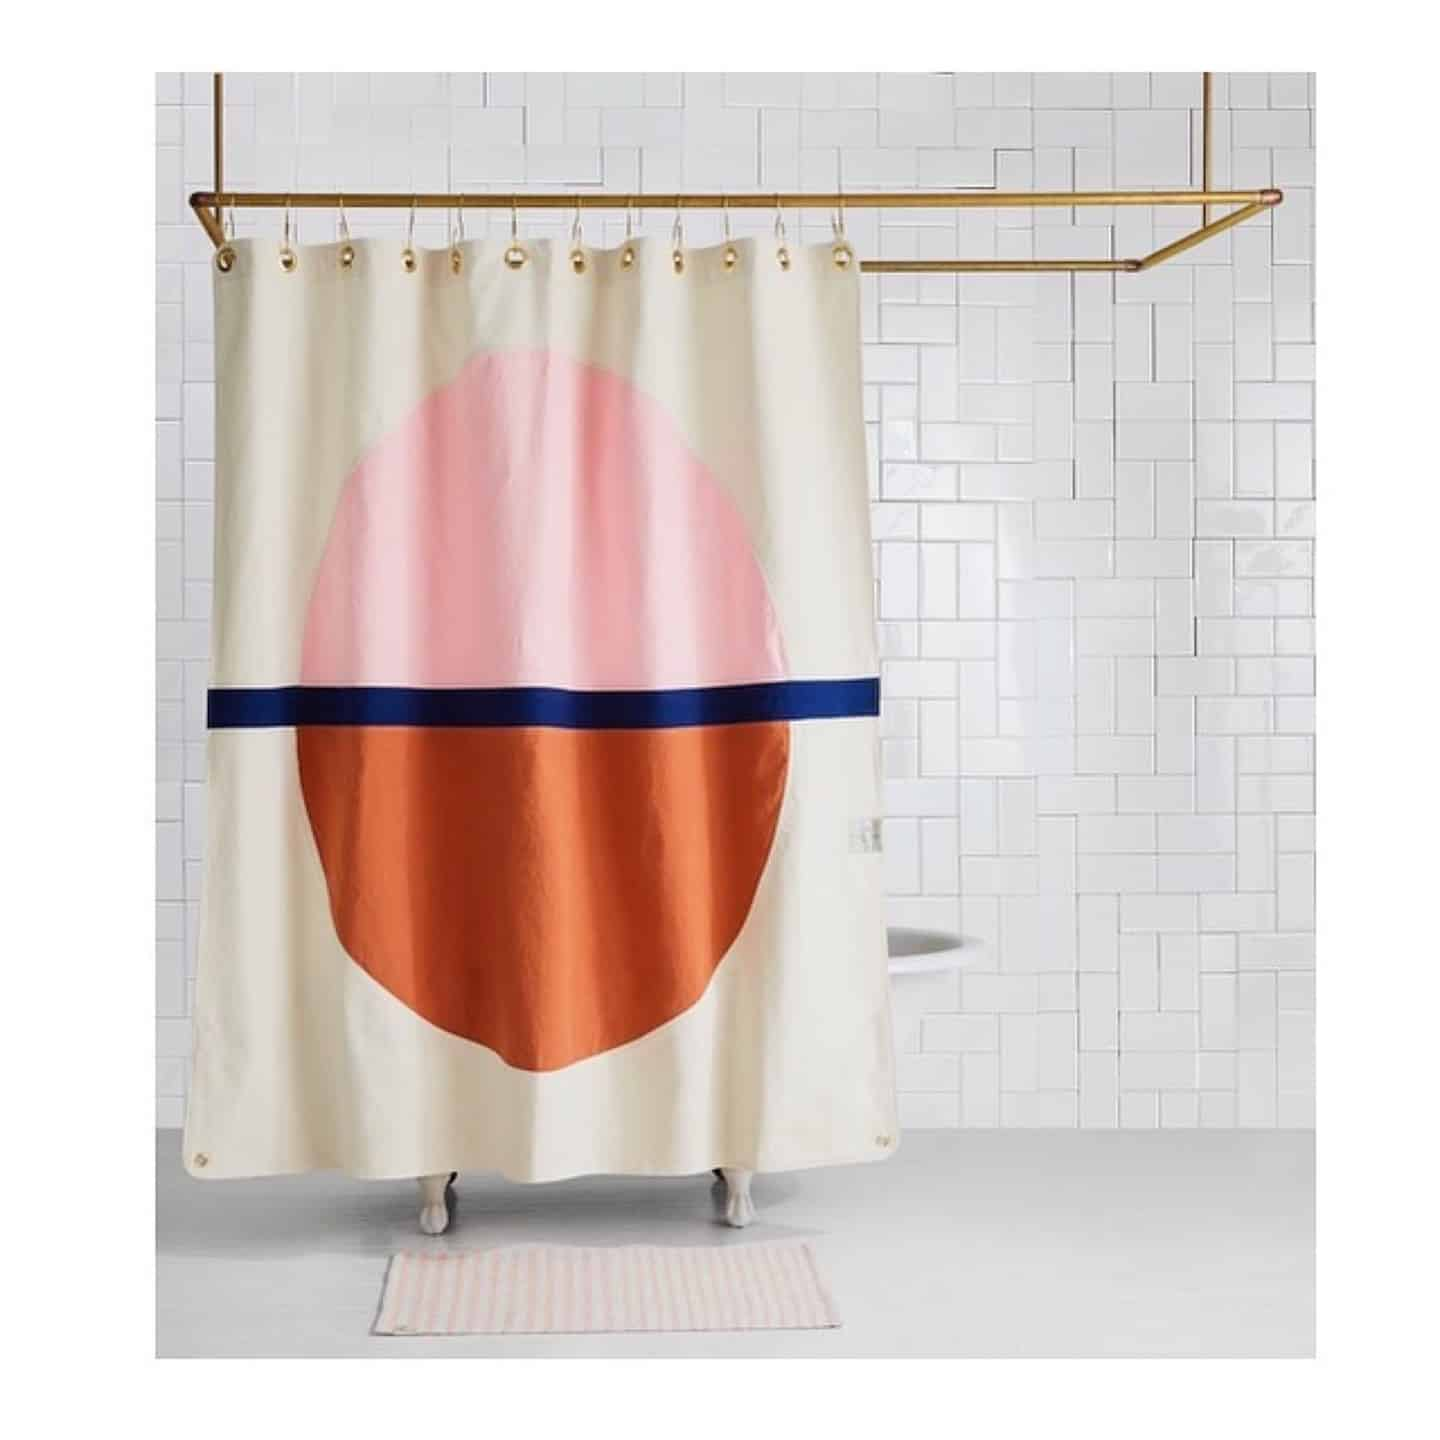 Brooklyn based Quiet Town's Shower Curtains